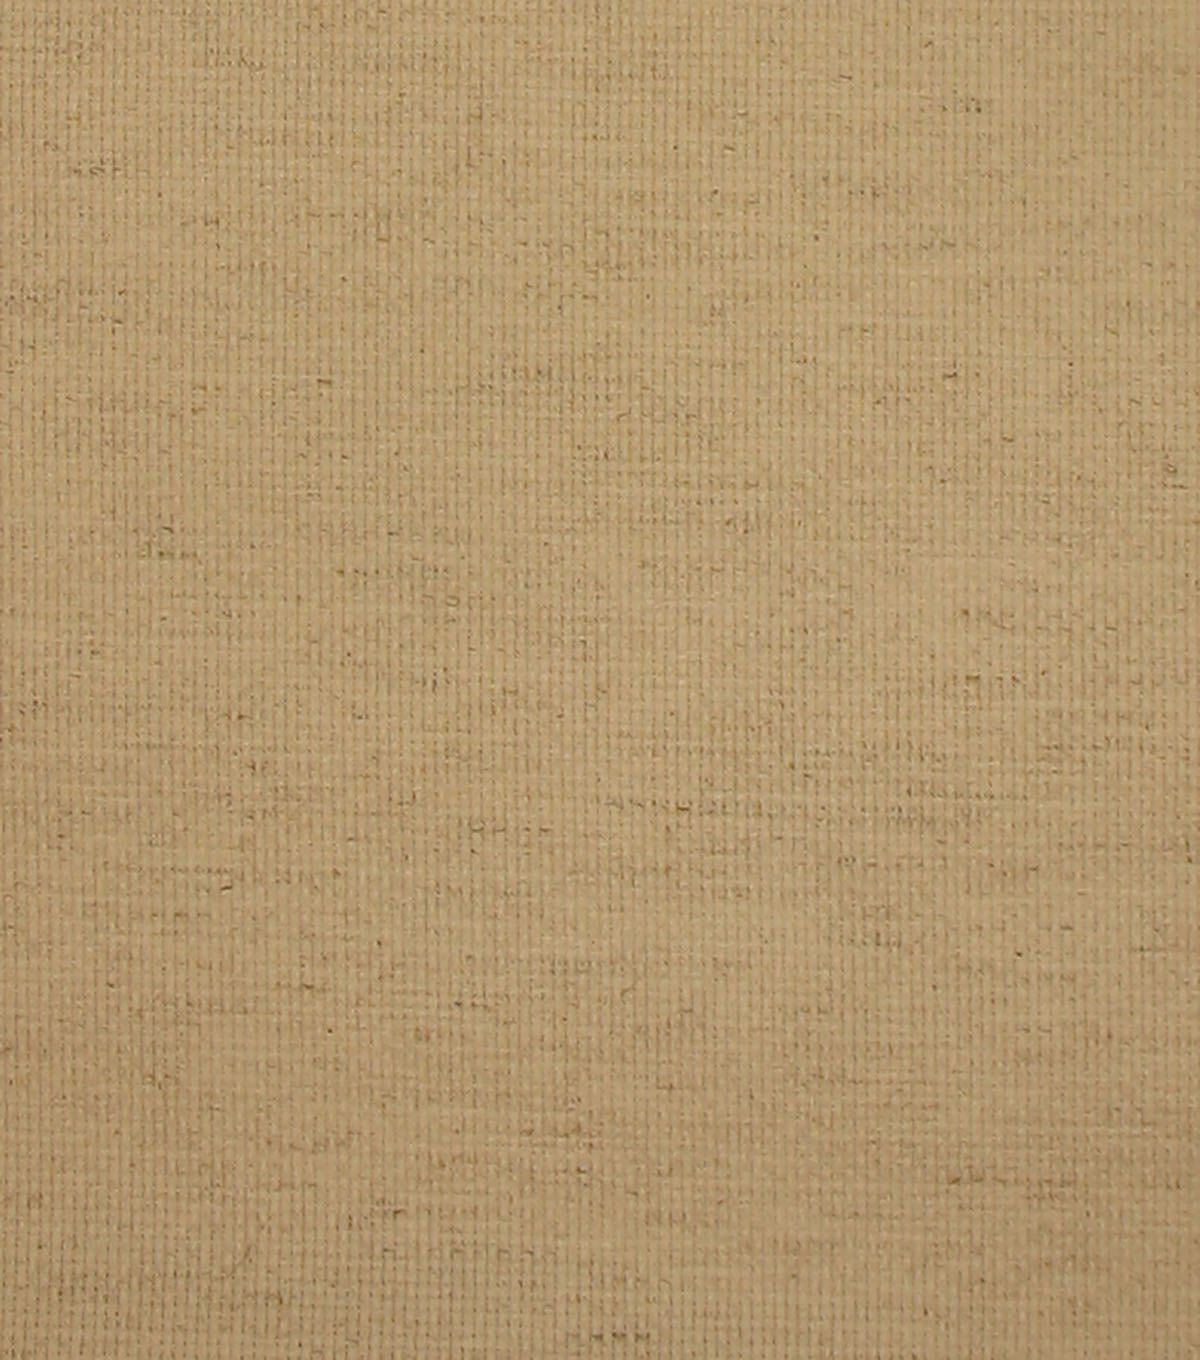 14 Count 15\u0022x18\u0022 Aida Cloth-Oatmeal